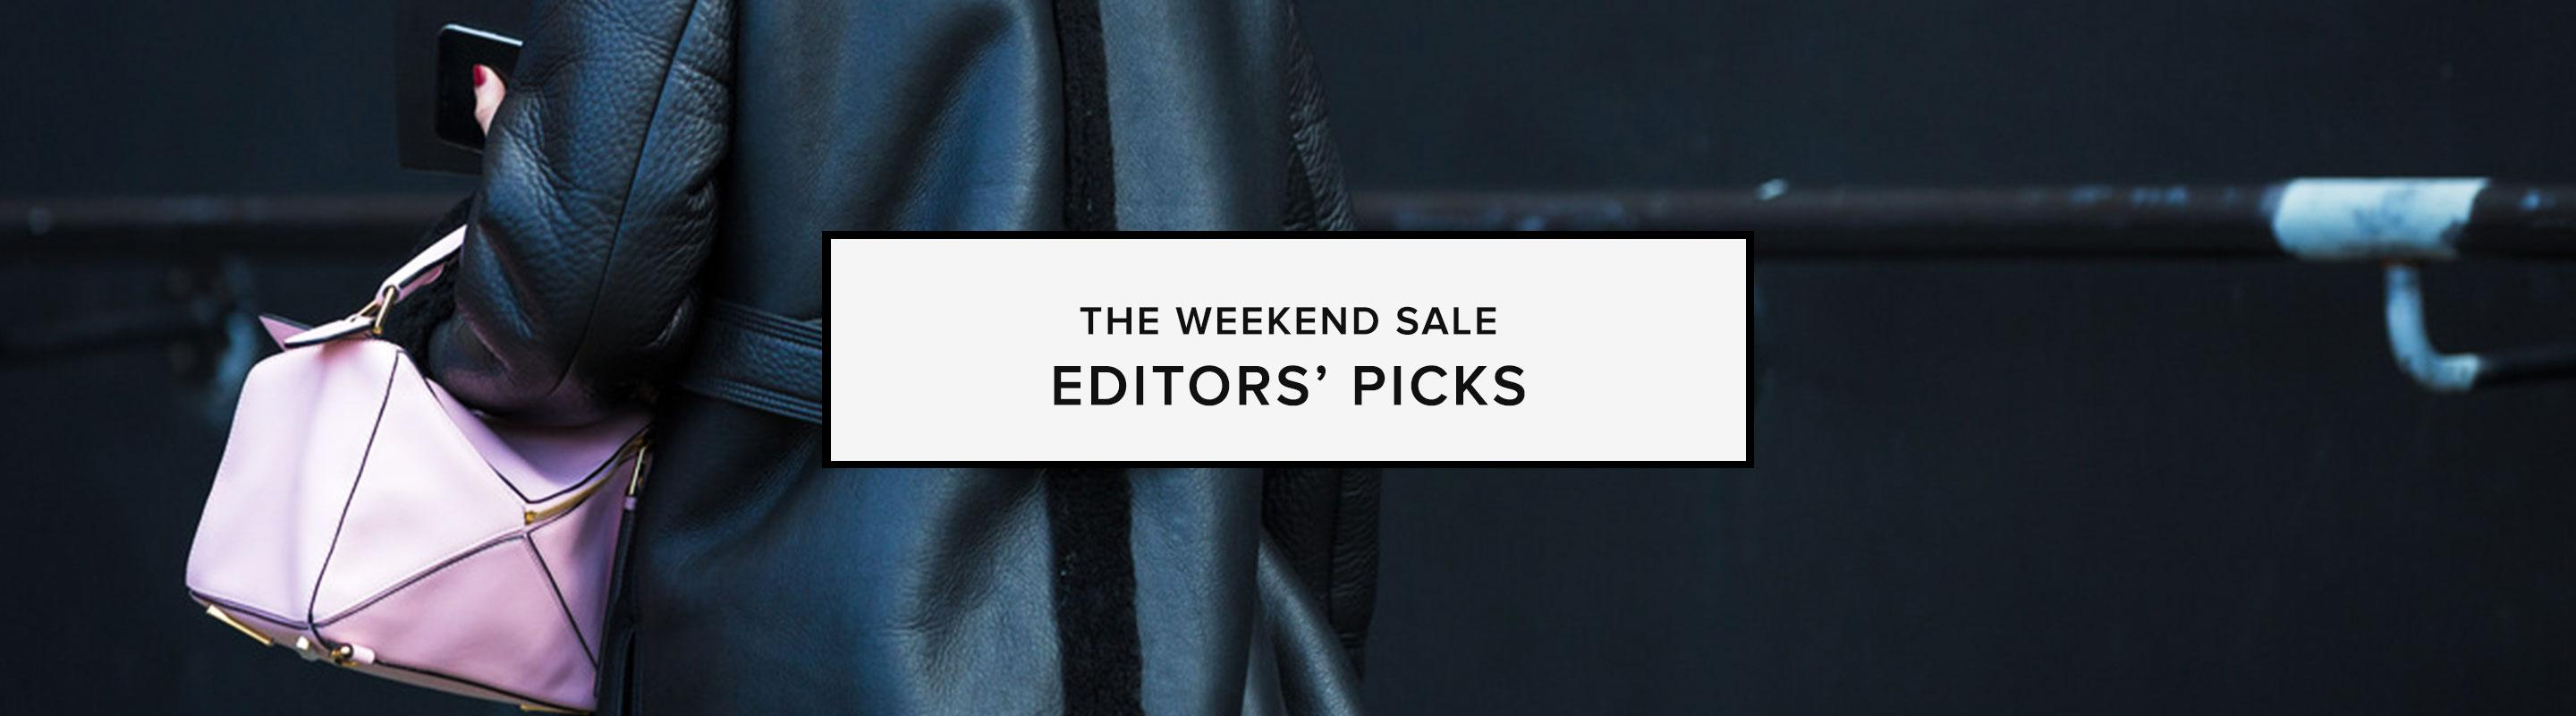 The Weekend Sale: New-With-Tags: Editors' Picks